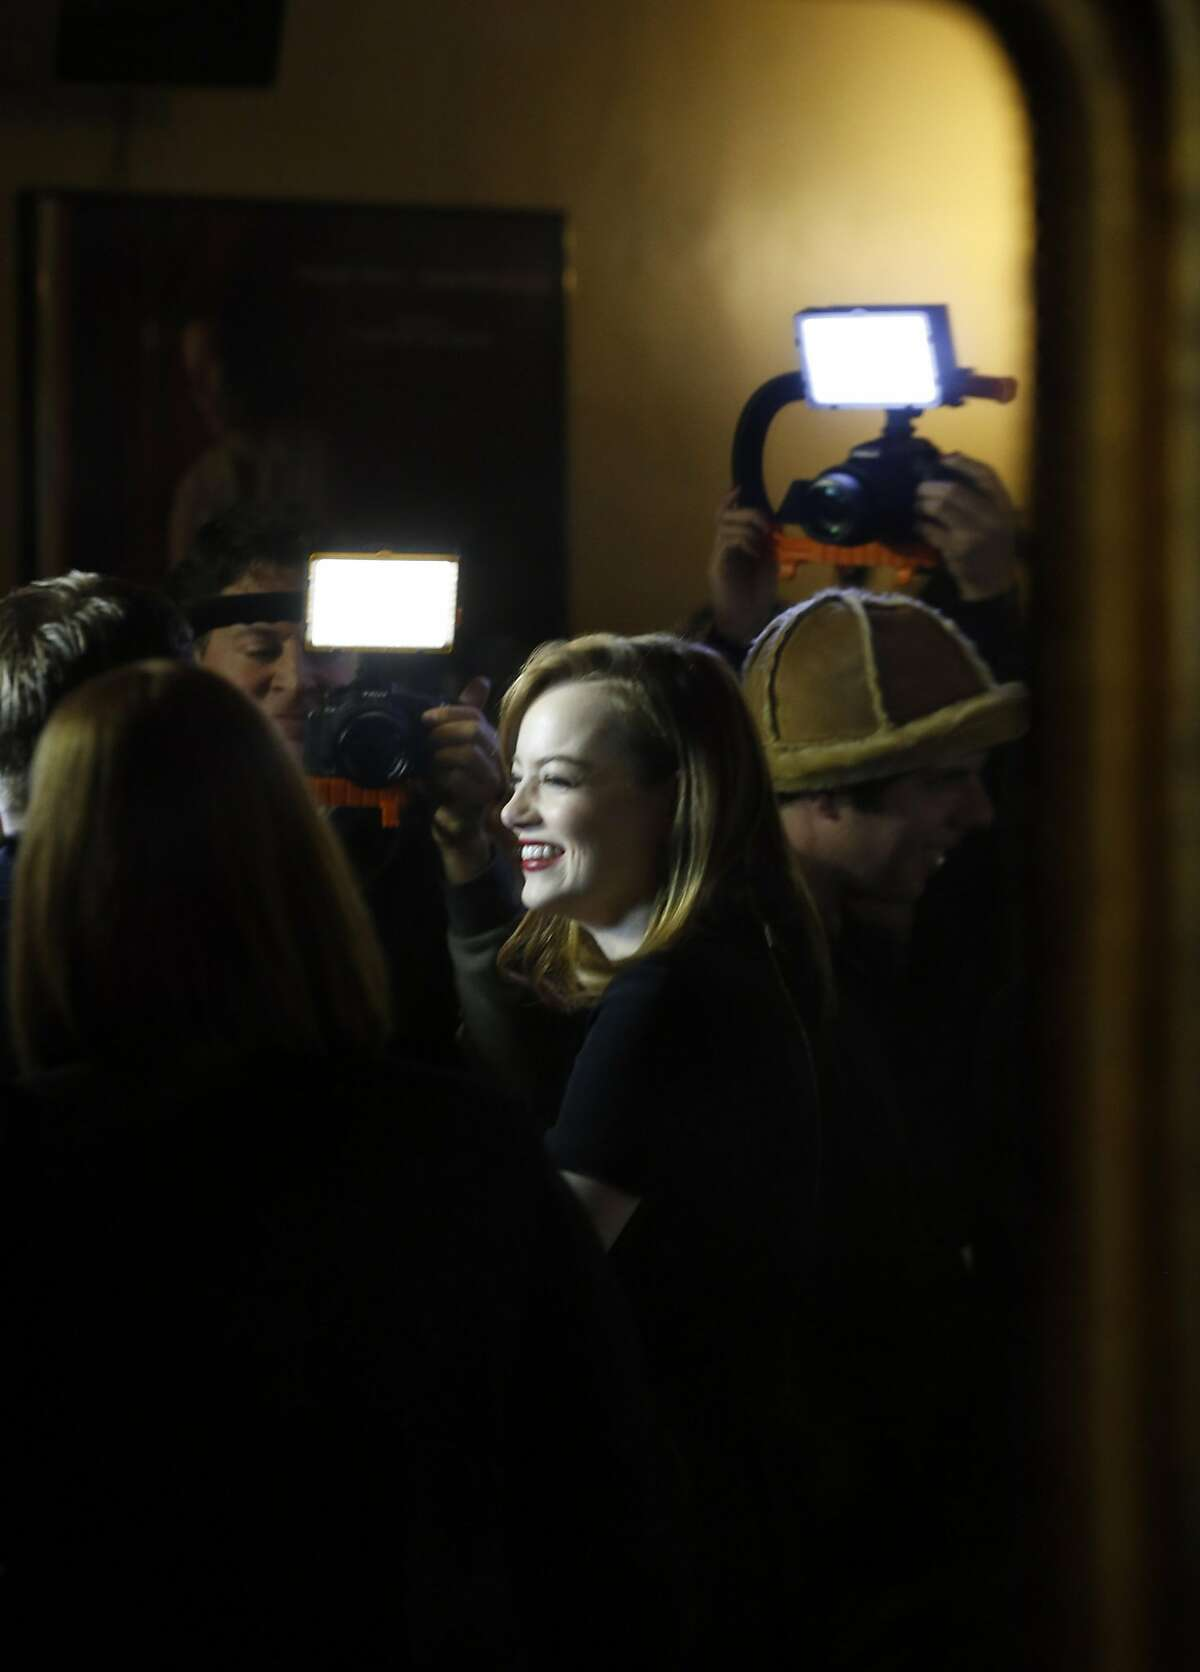 Actress Emma Stone is reflected in a mirror as she is interviewed before a special screening of La La Land at the Castro Theater in San Francisco, Calif., on Thursday, December 8, 2016. The SF Film Society honored LaLa Land with a special screening at the Castro with director Damien Chazelle and stars Ryan Gosling and Emma Stone.